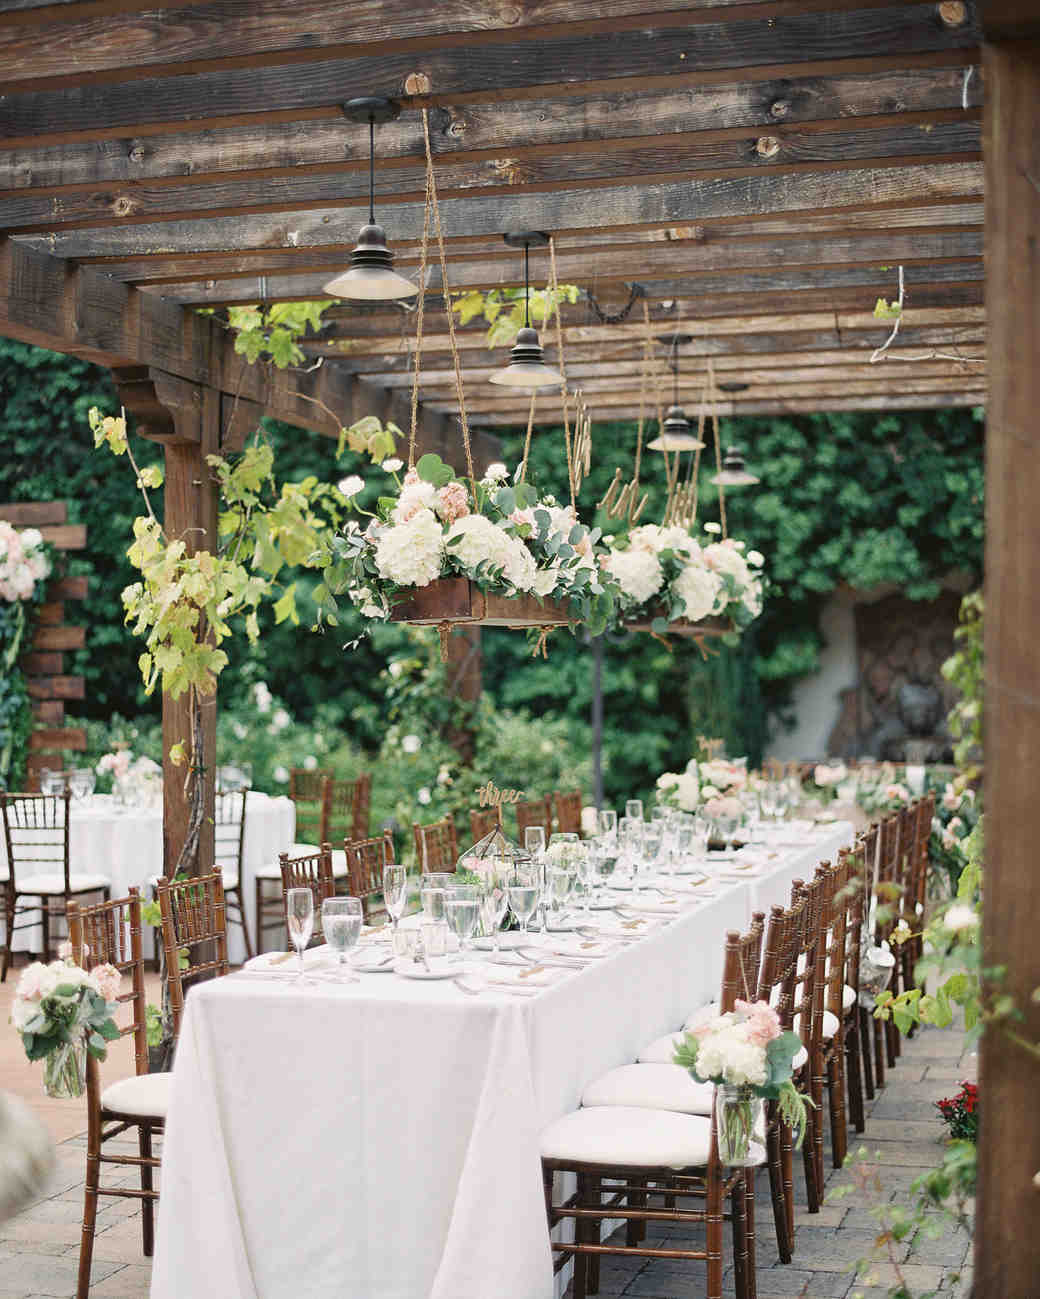 Wedding Table Decorations: 28 Ideas For Sitting Pretty At Your Head Table